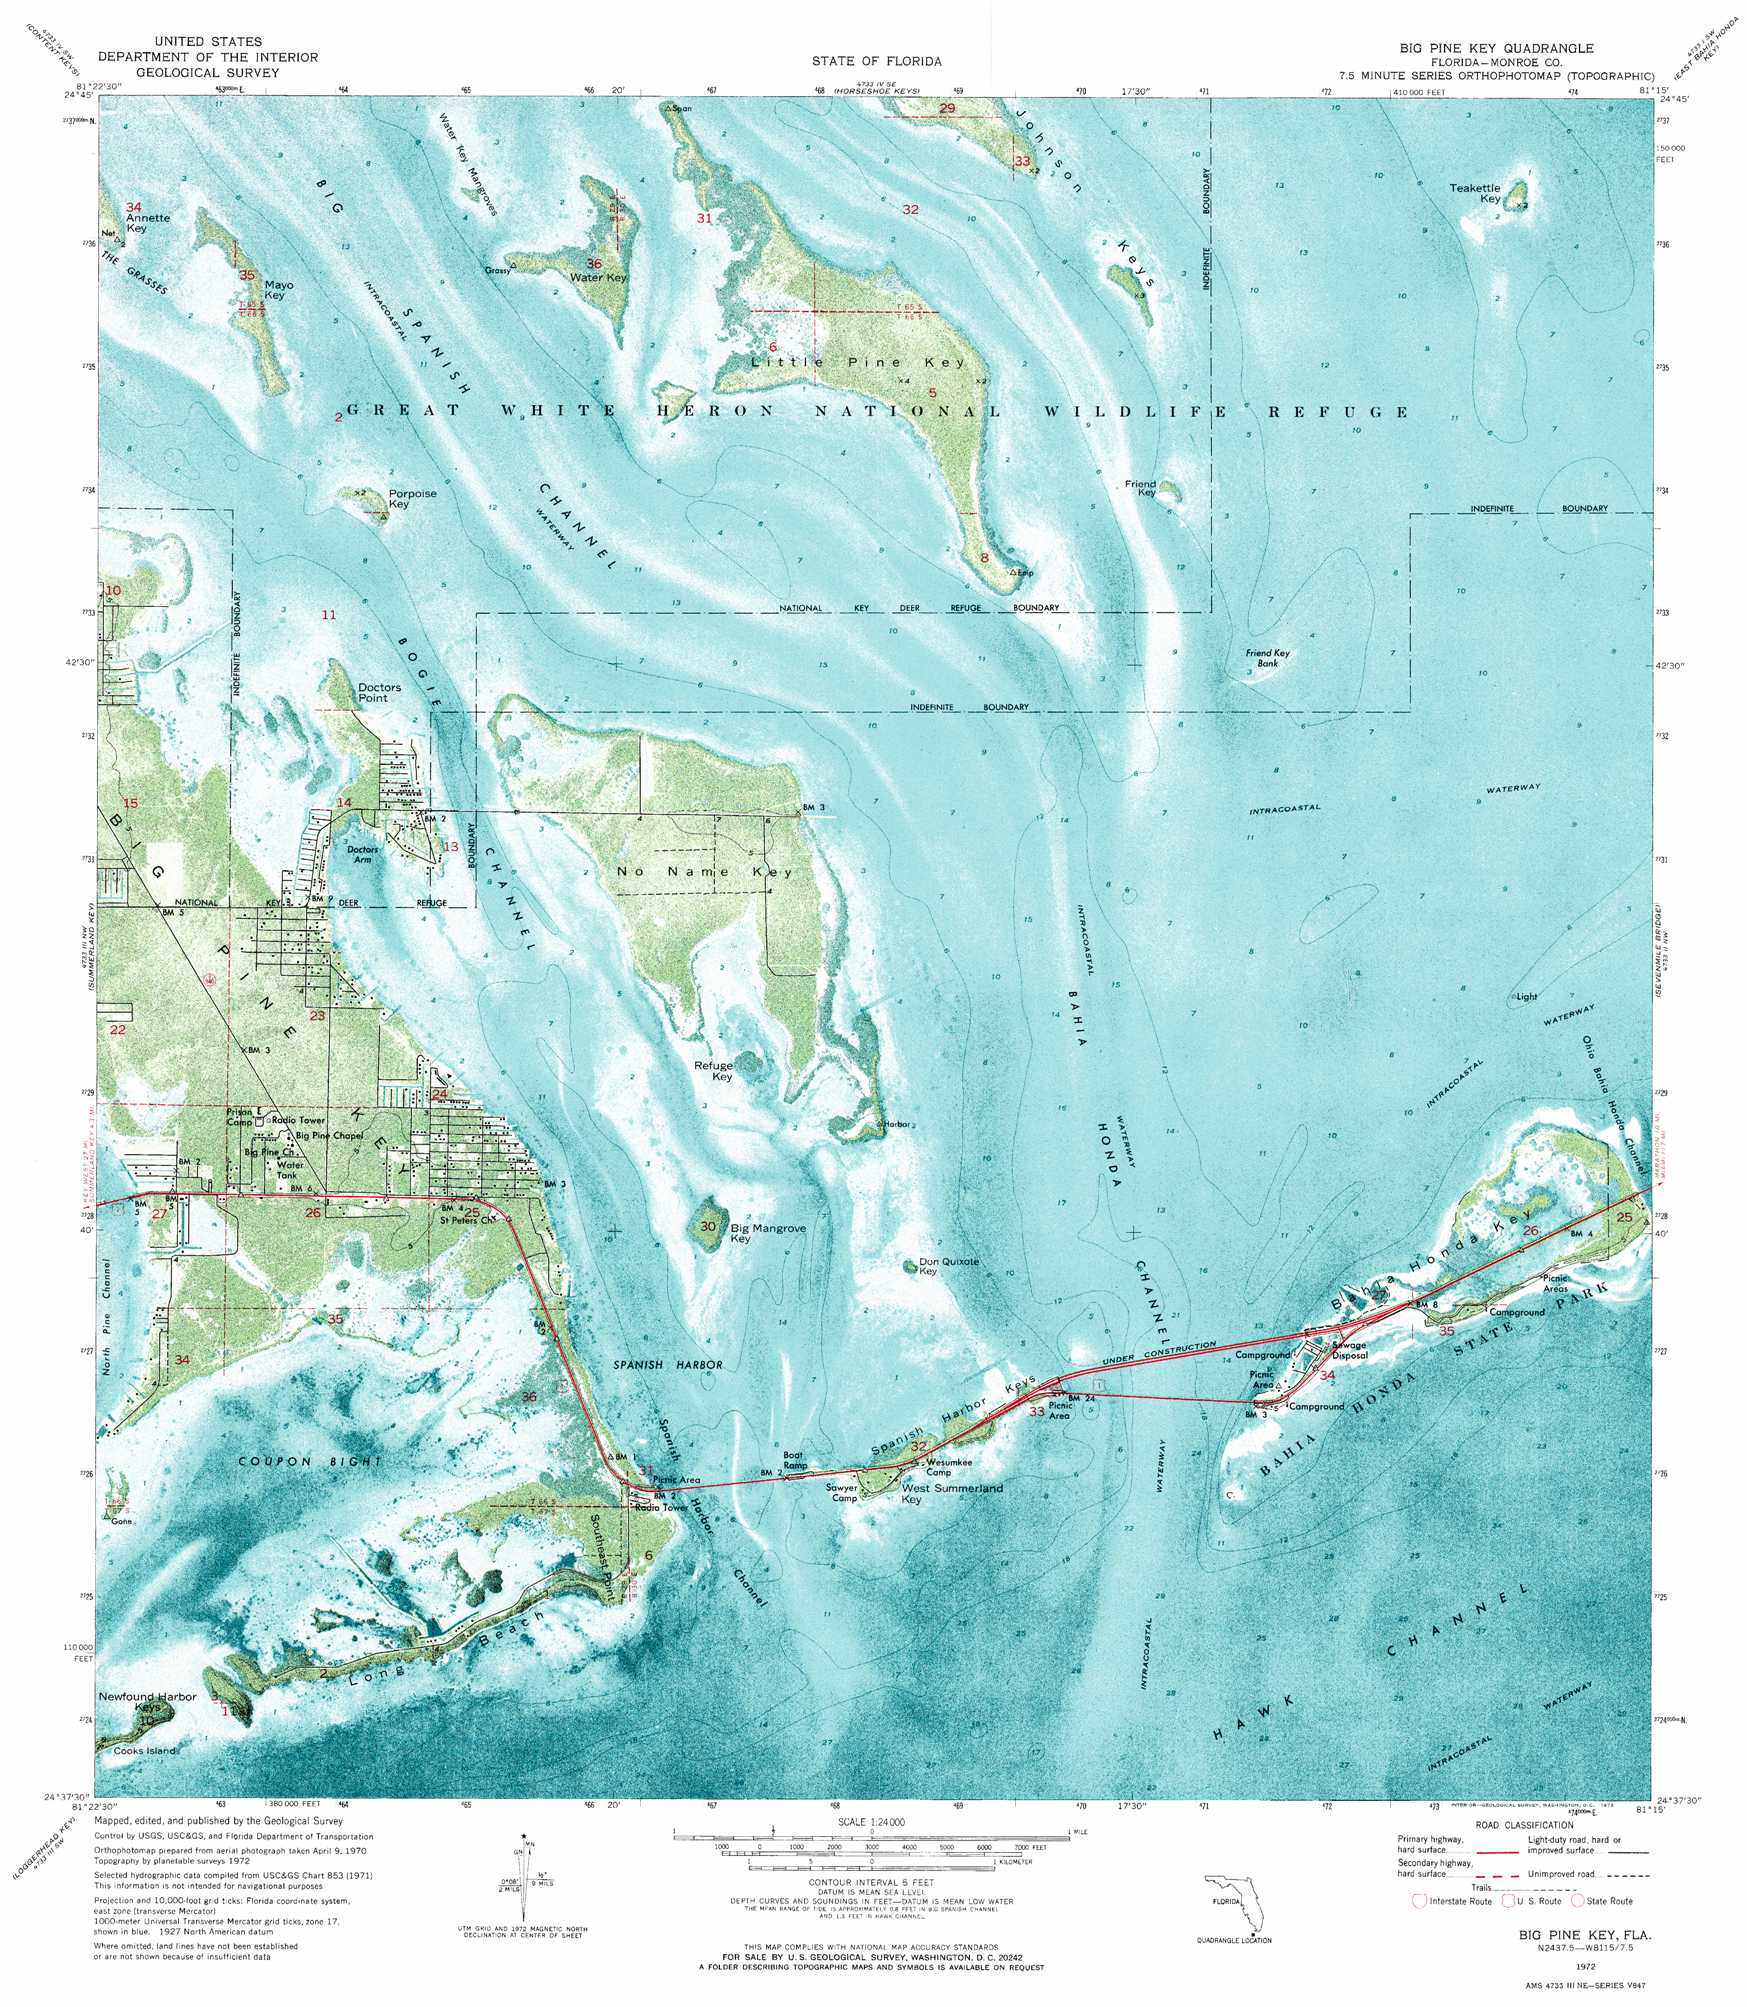 Big Pine Key topographic map, FL - USGS Topo Quad 24081f3